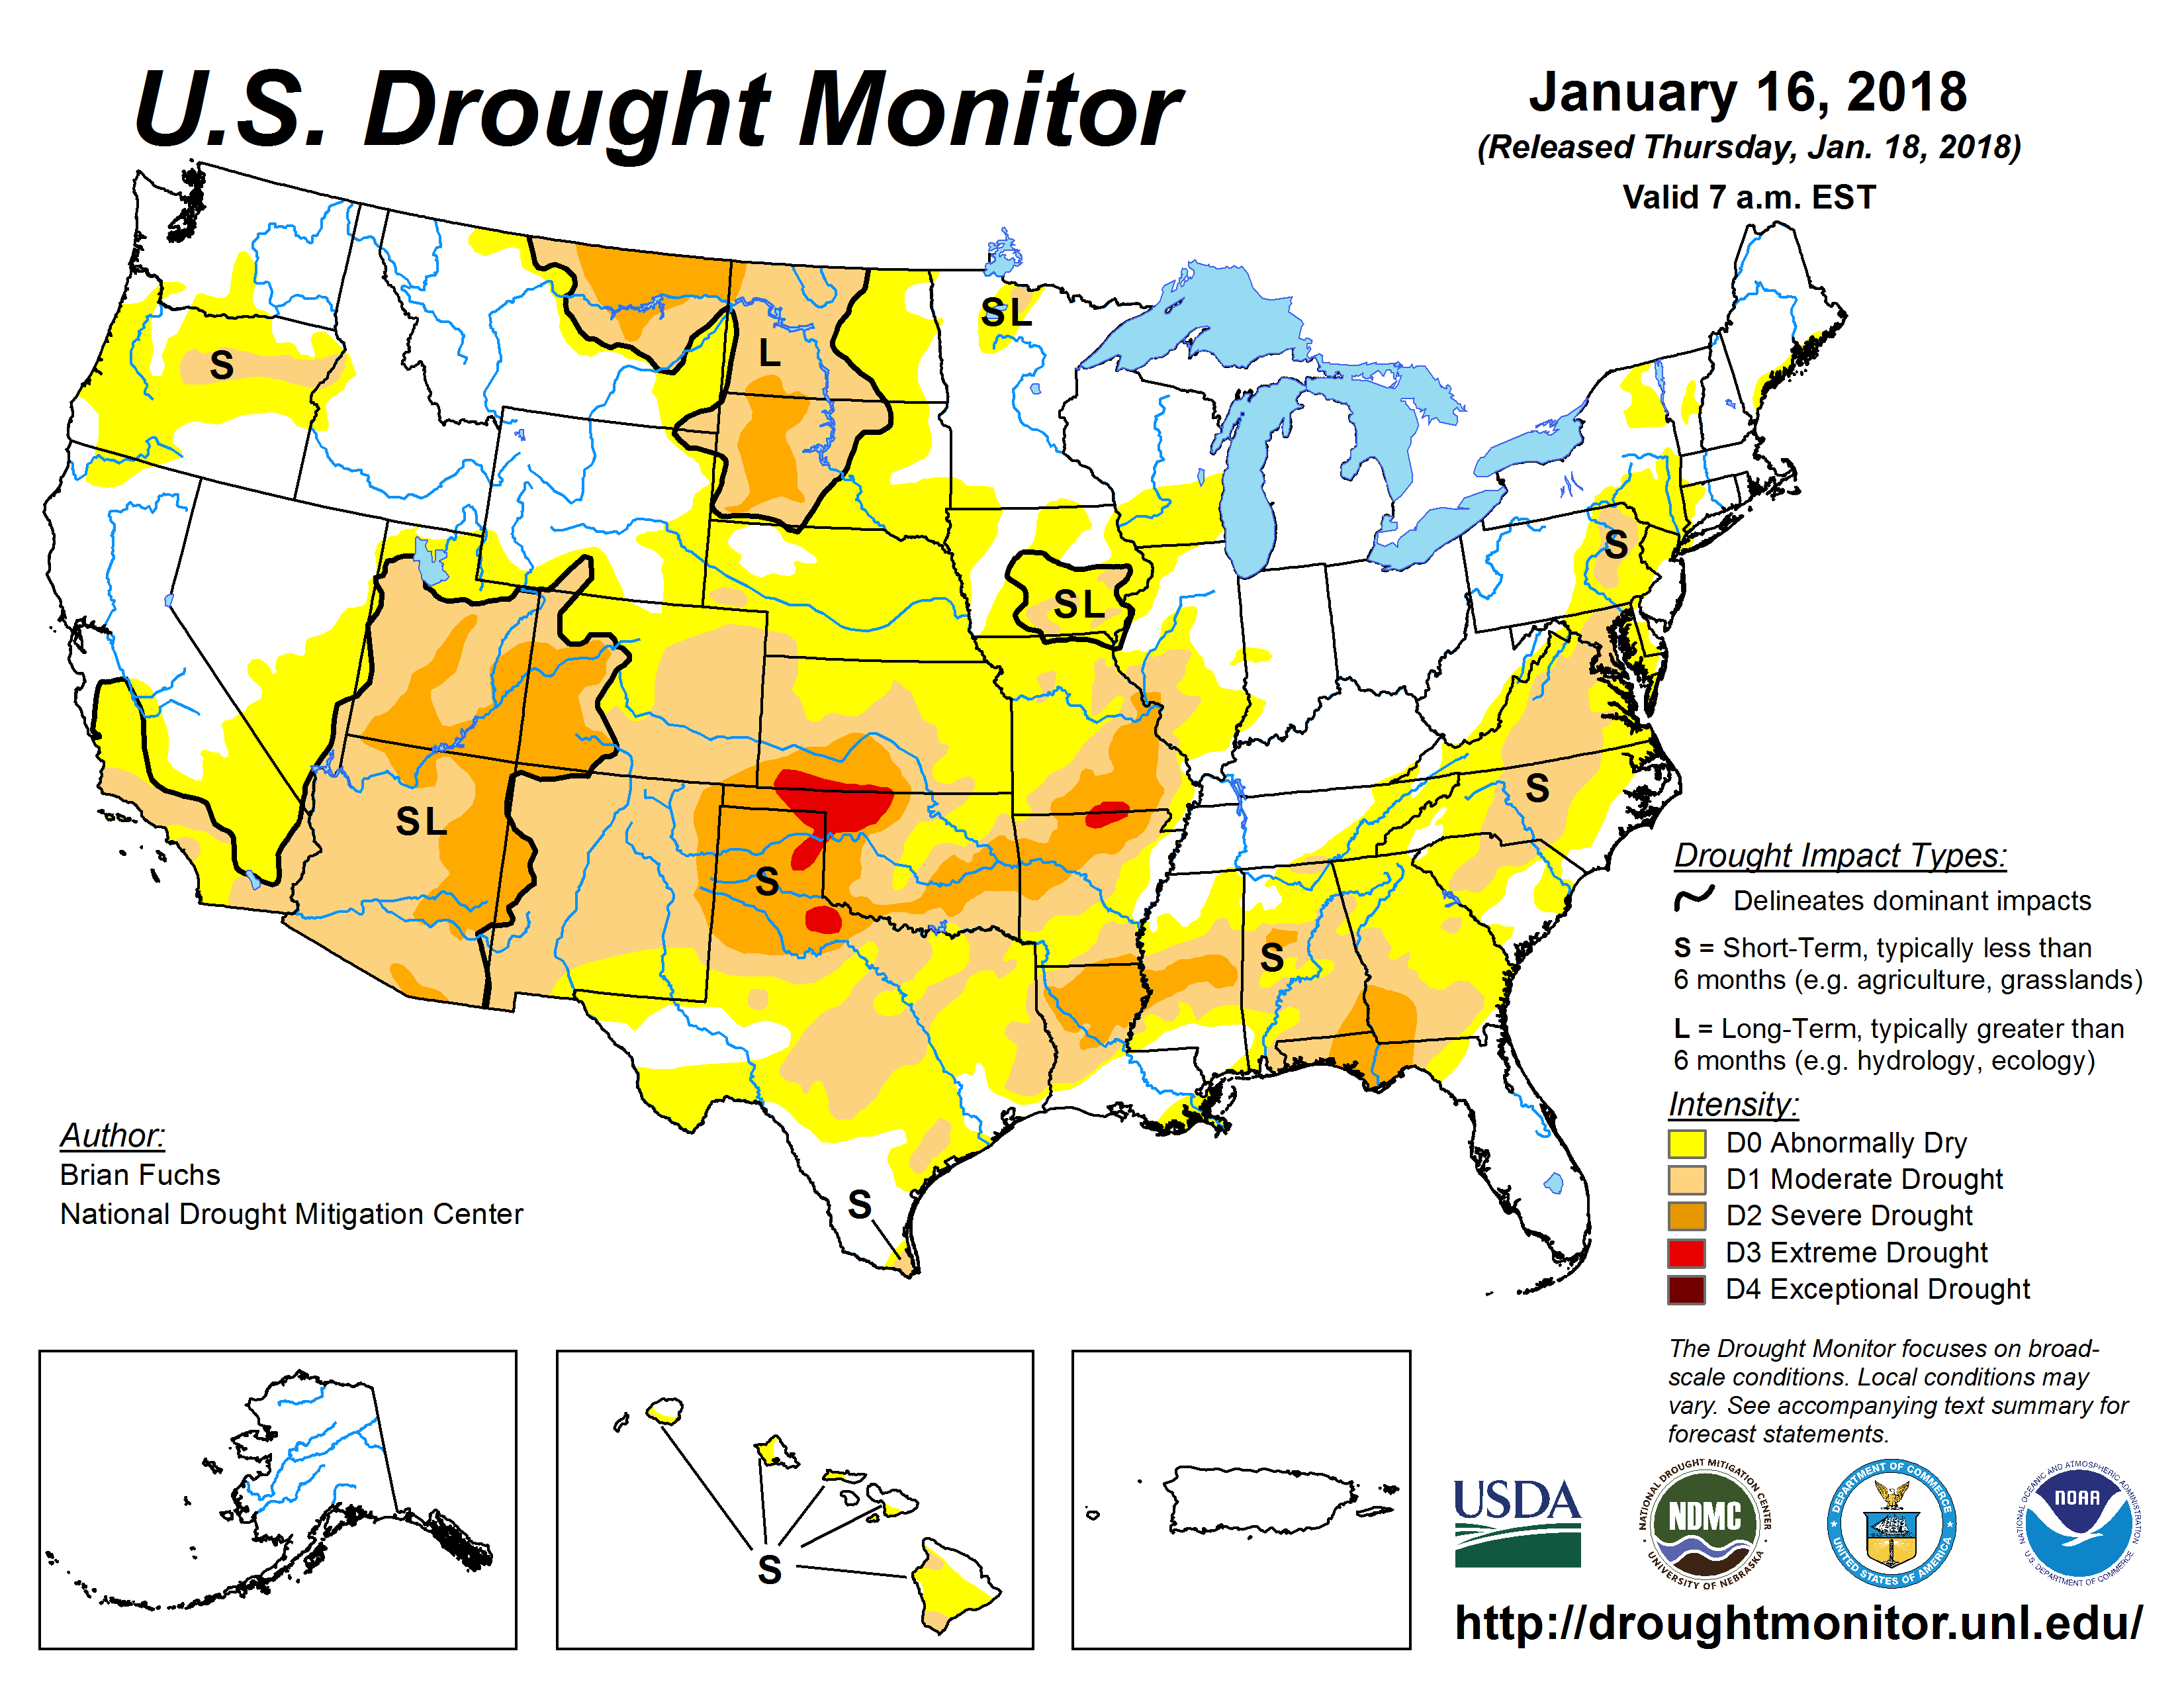 an analysis of drought conditions in some american states State level analysis of drought policies and impacts in rajasthan, india colombo   too complex a situation to be described by a few figures in a table however   production production price price price price price price drought us $) area.